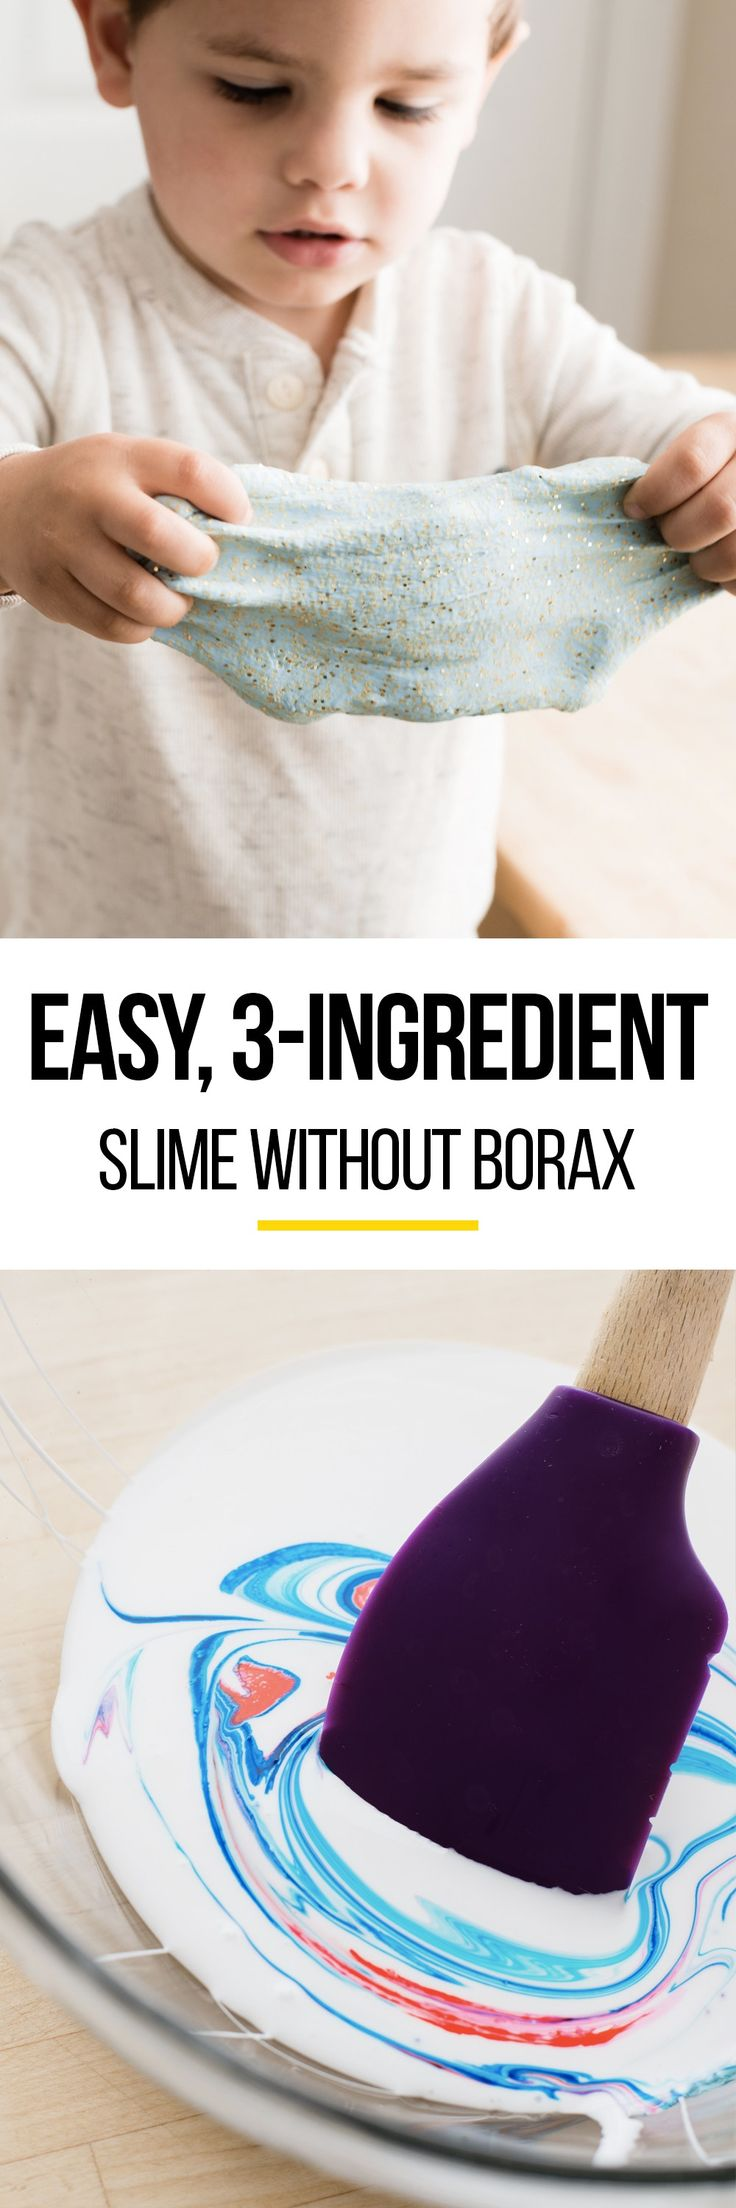 How To Make 3-Ingredient Slime Without Borax — Craft Lessons from The Kitchn